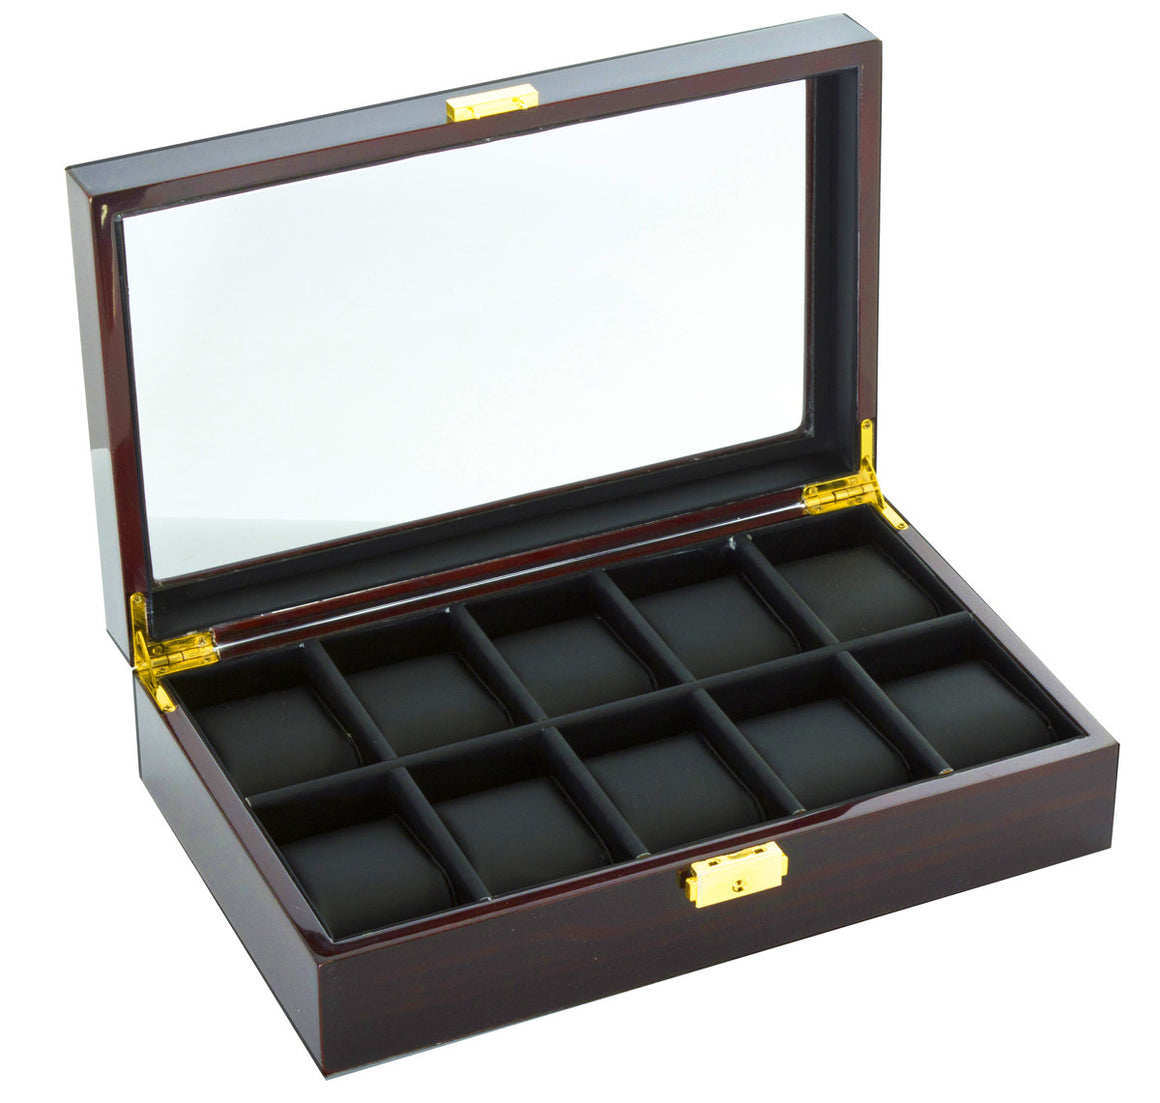 (10) Diplomat Ebony Wood Watch Box - Watch Box Co. - 1